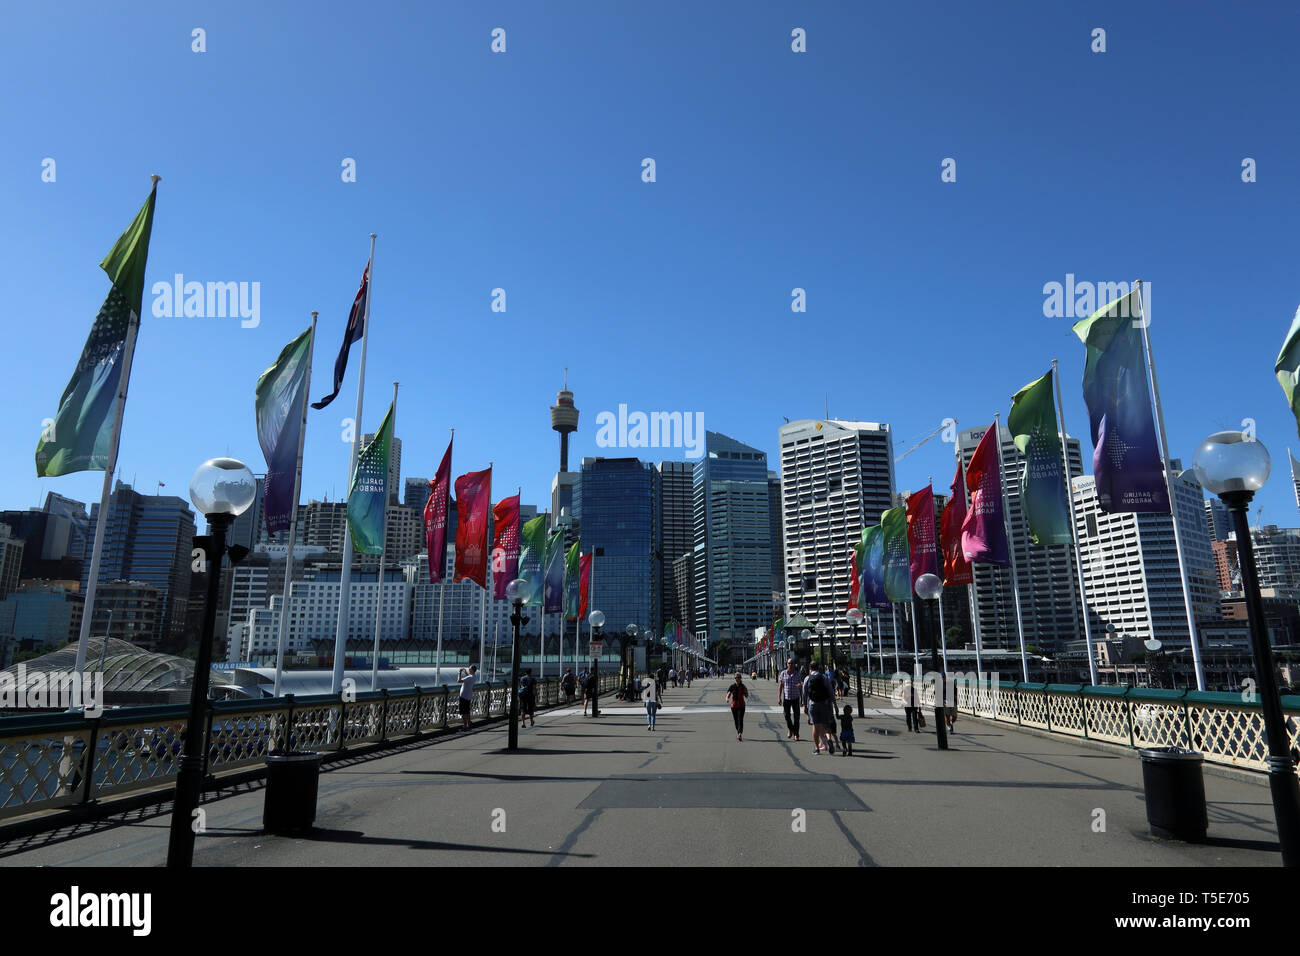 Darling Harbour, Sydney, Australien Stockbild